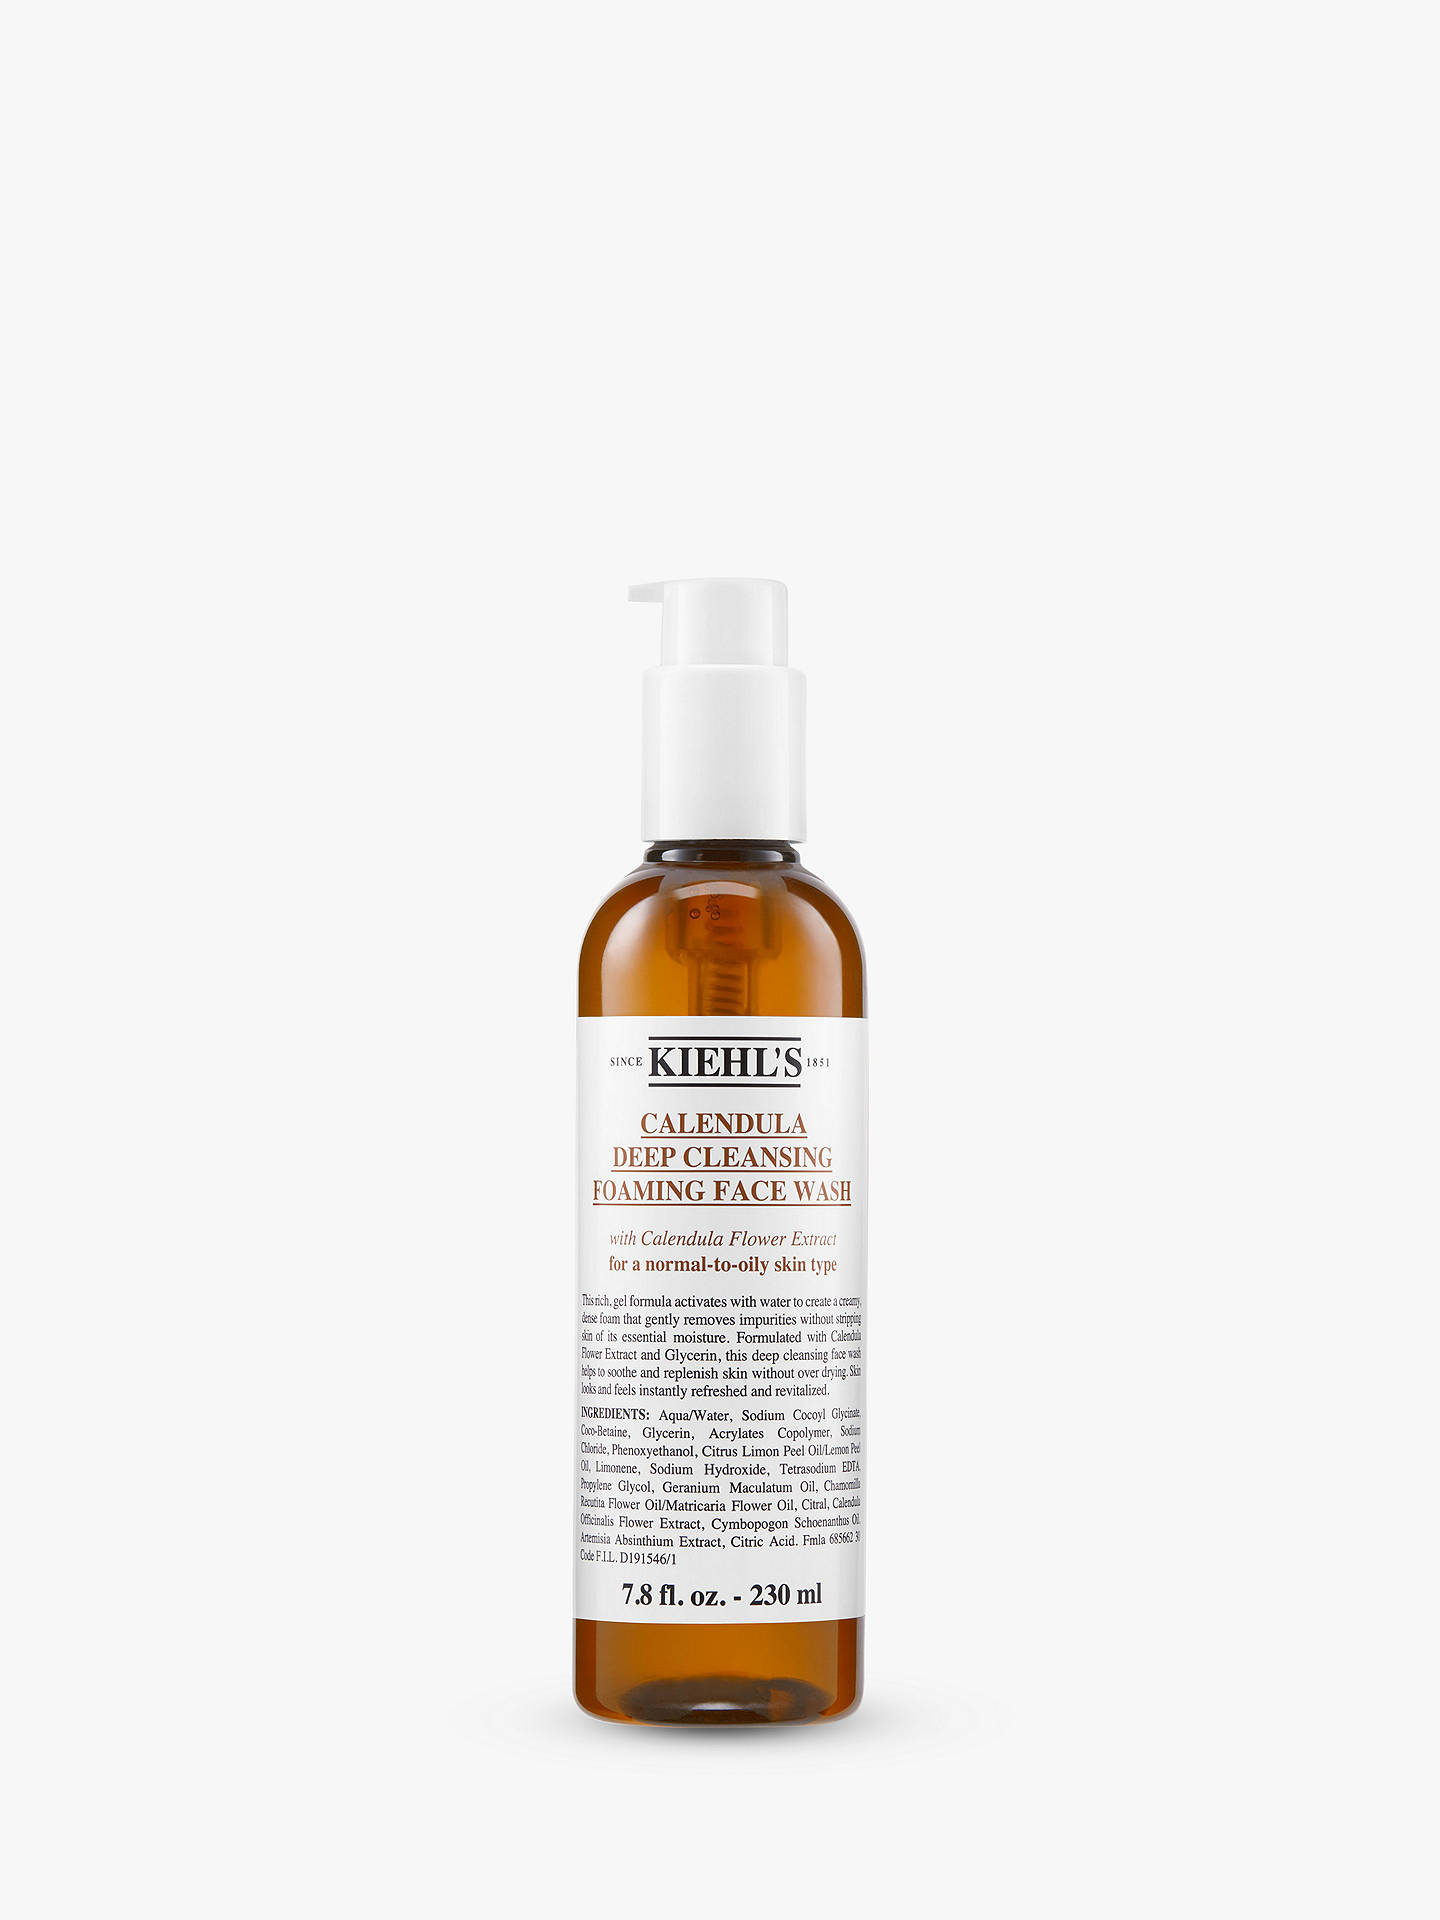 BuyKiehl's Calendula Foam Cleanser, 230ml Online at johnlewis.com